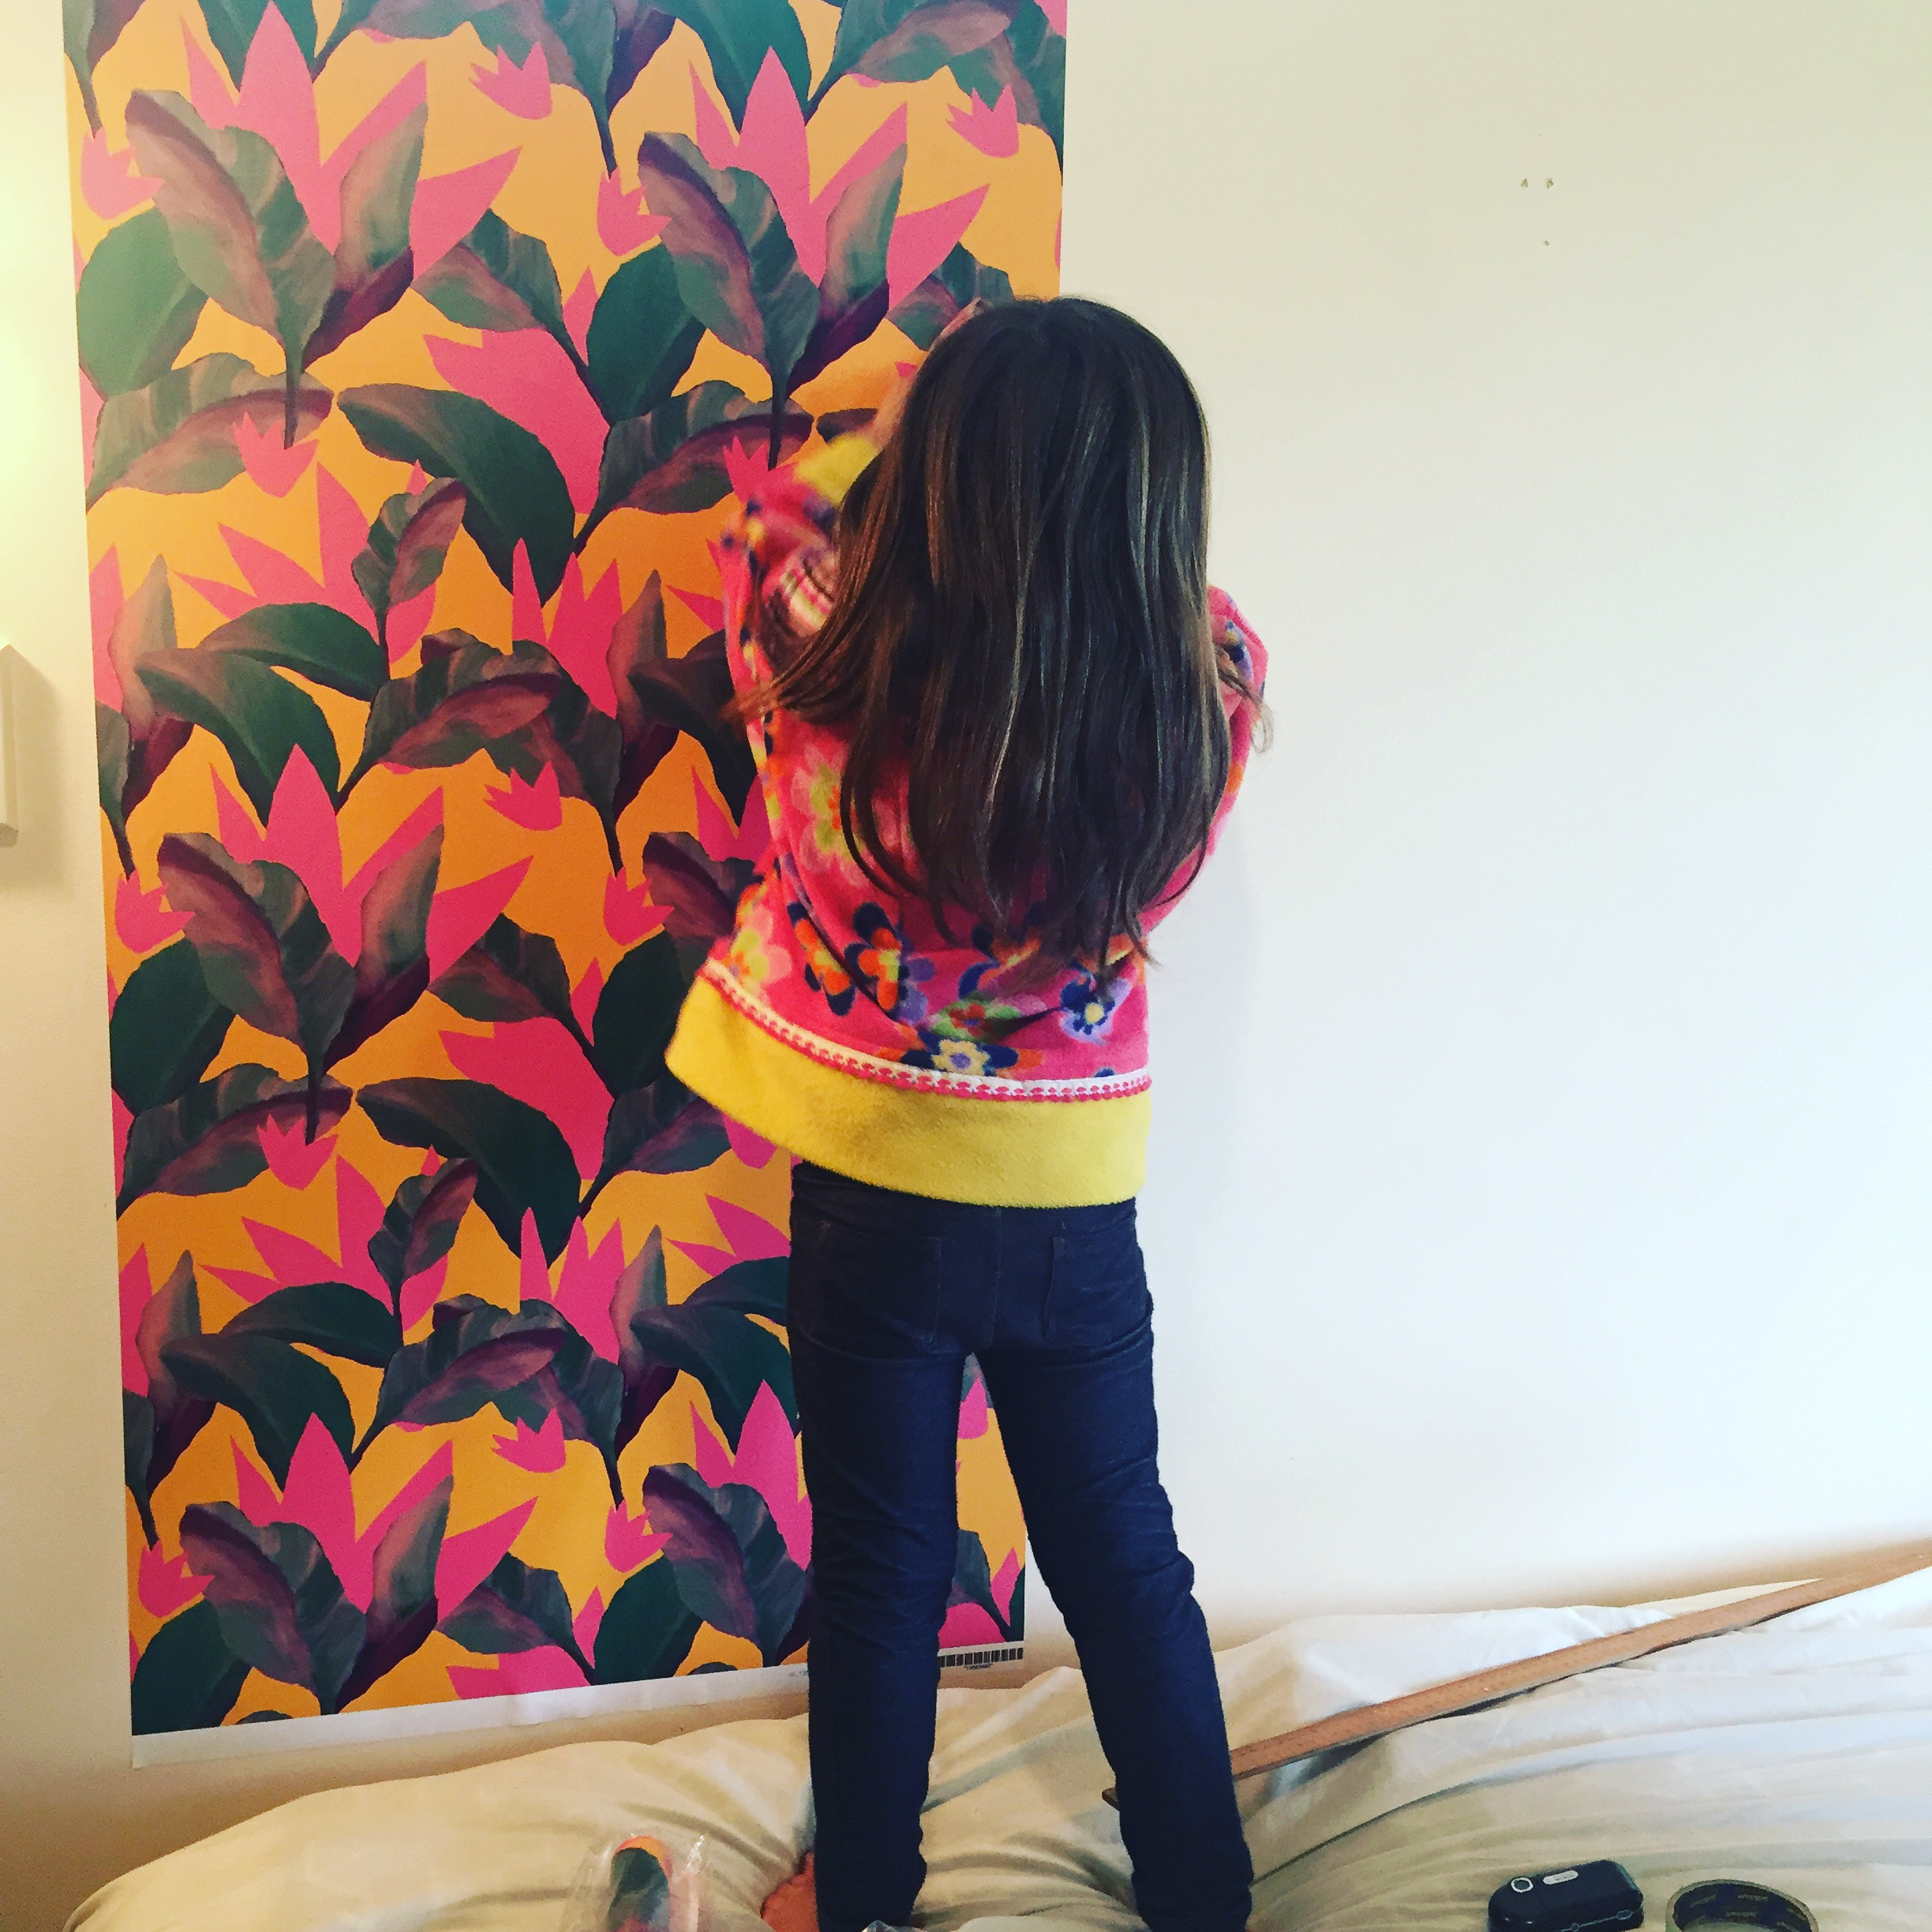 Hanging the wallpaper was so easy - even our four year old was able to help in her conveniently matching top. These custom drops of wallpaper are available via my spoonflower store in lengths by the foot and as fabric by the yard in a range of fabric types.